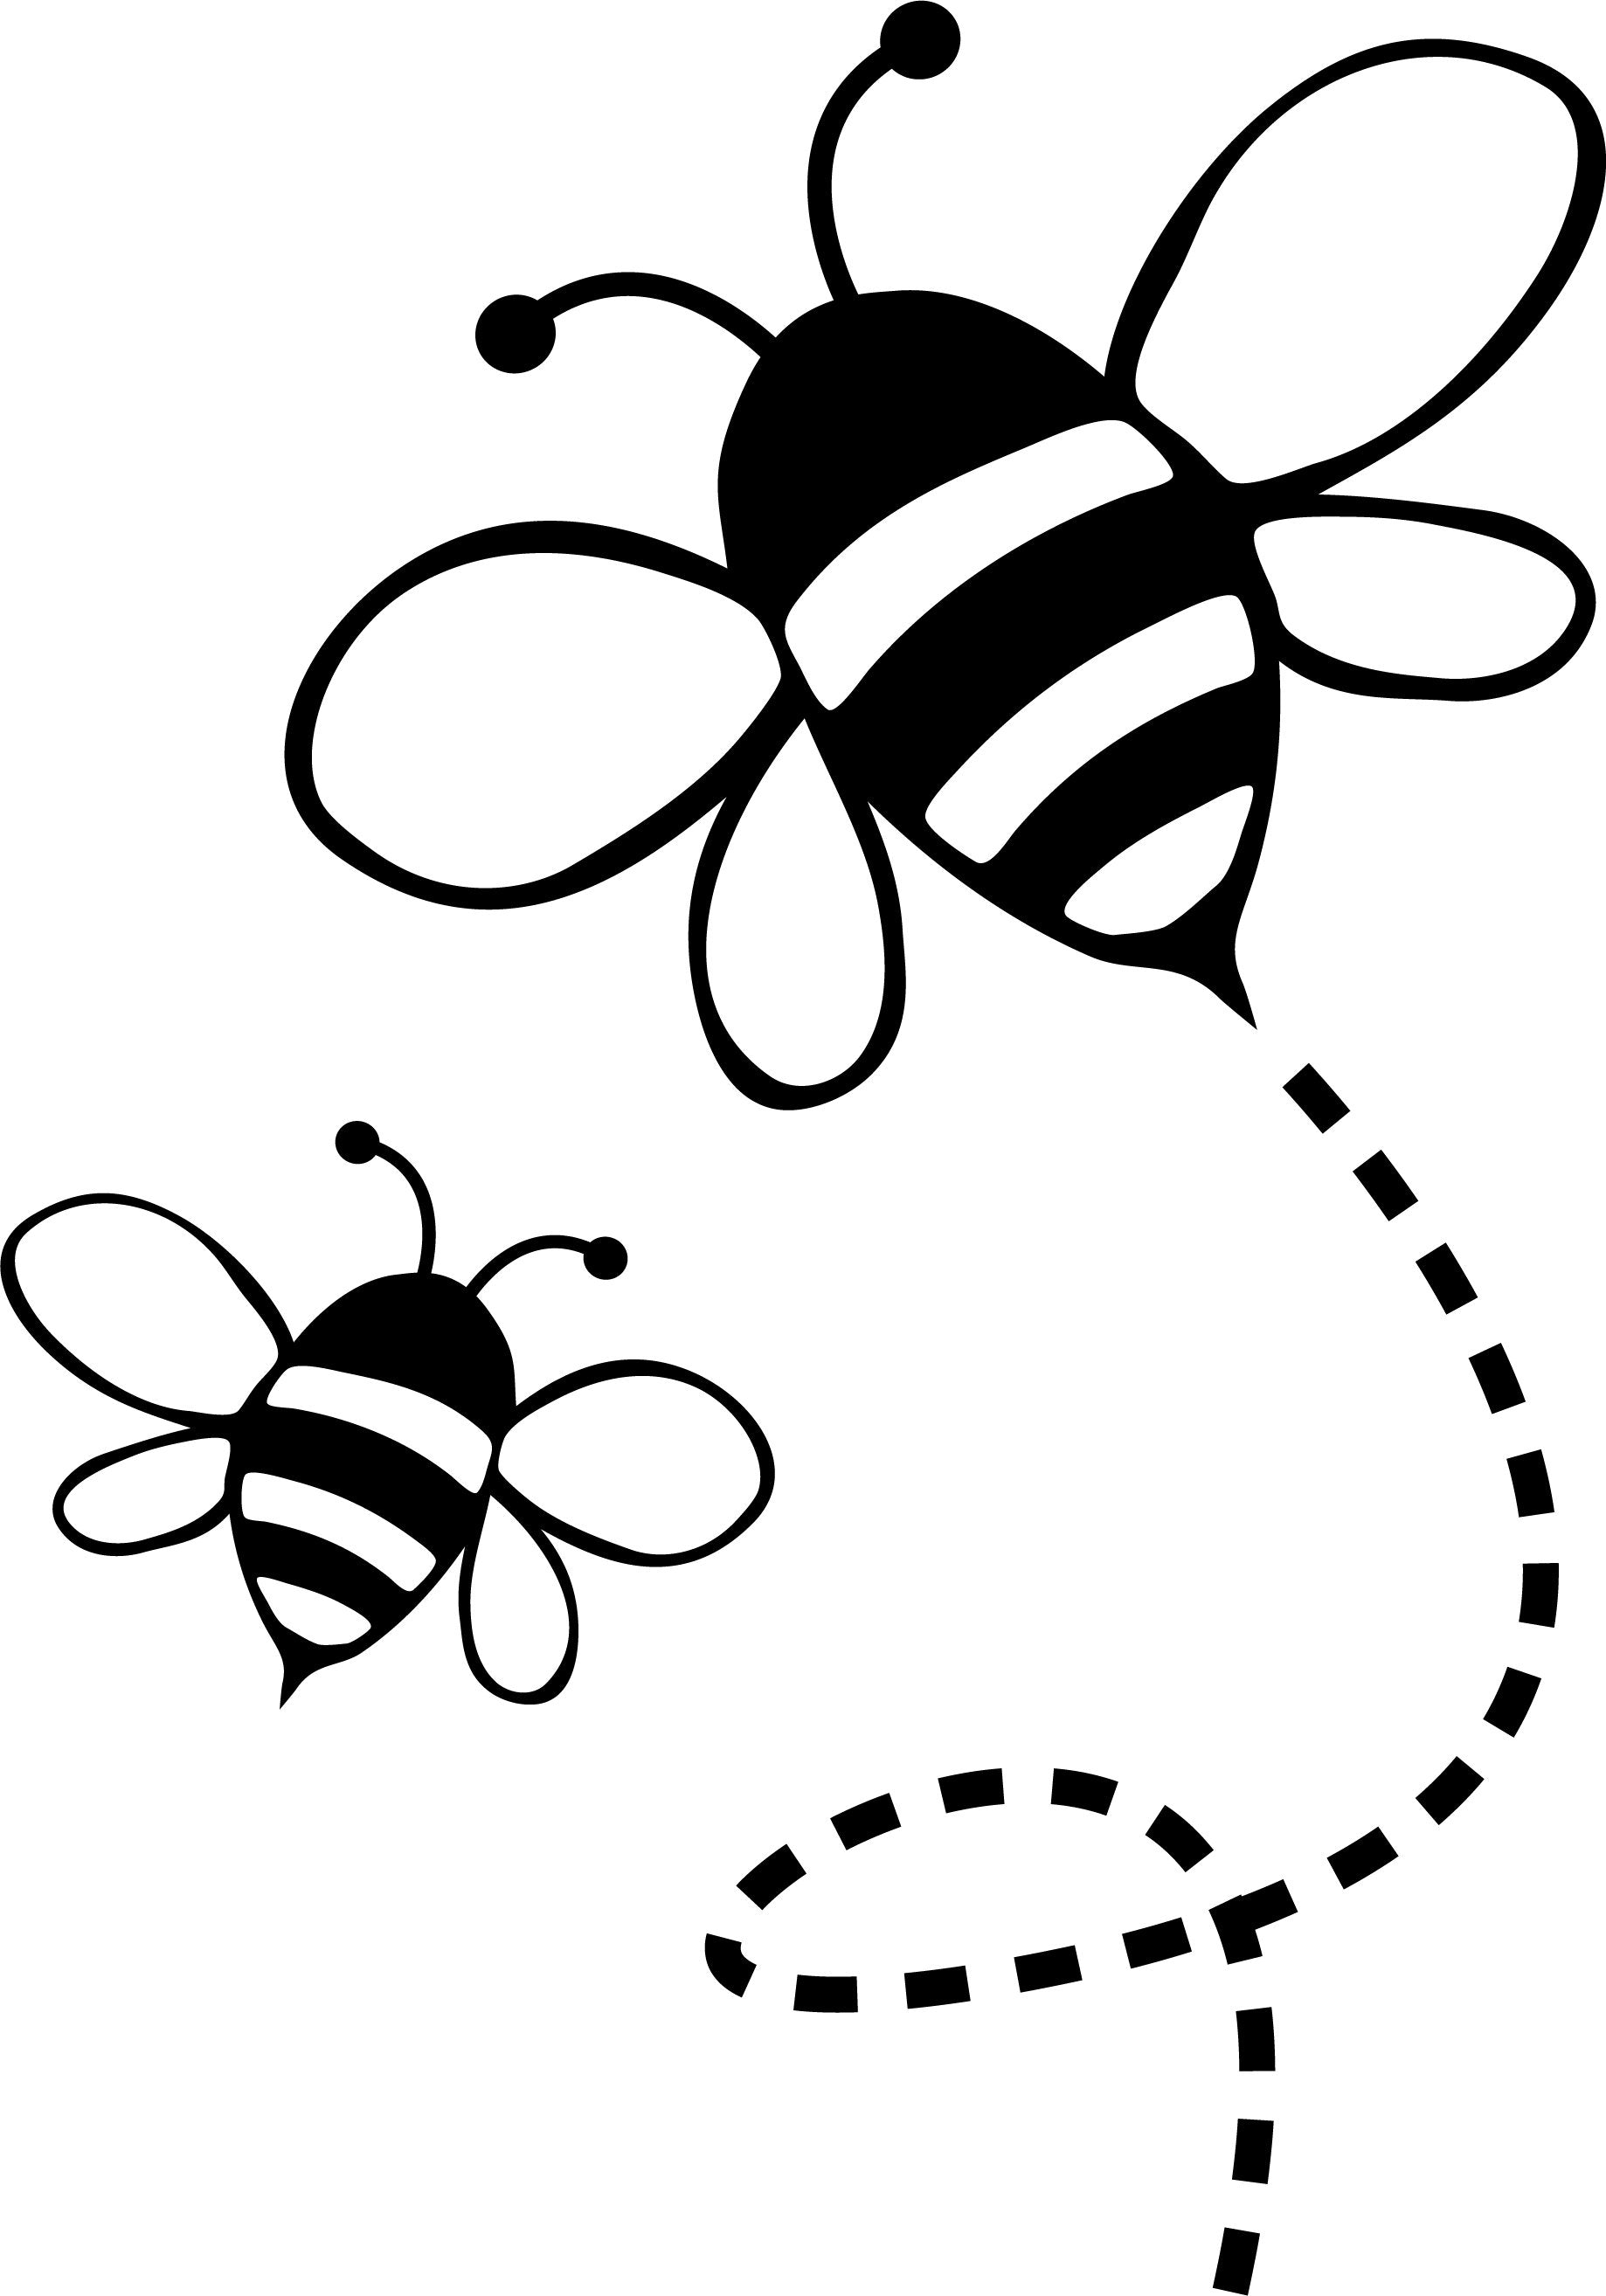 Insects-Bee-2